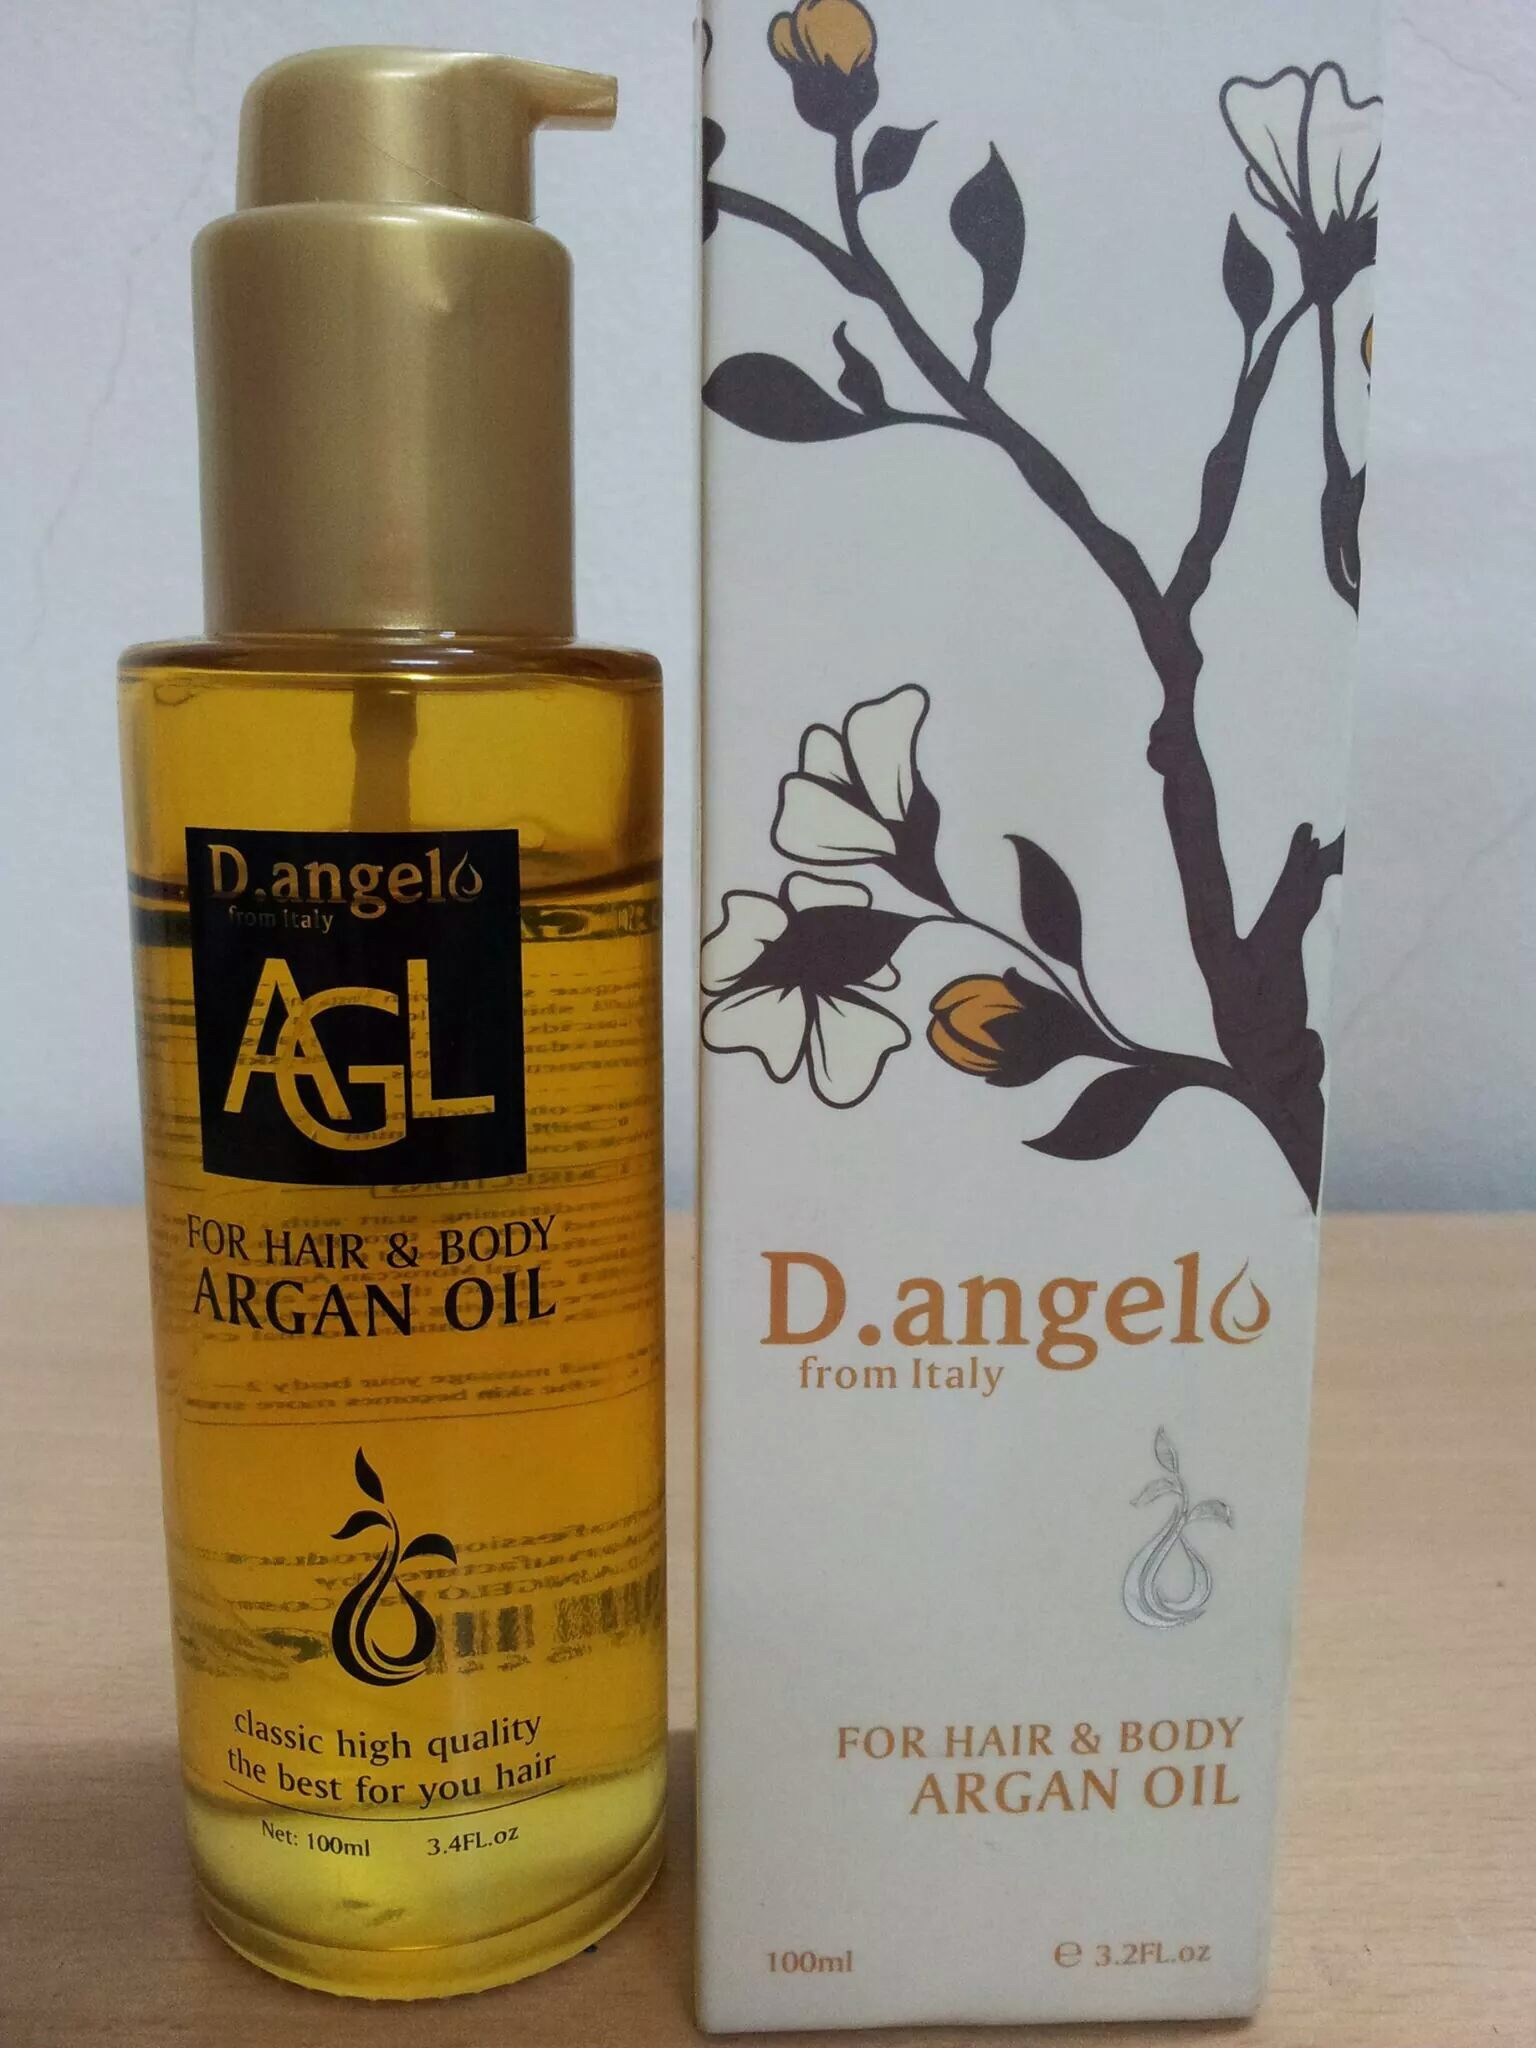 Tinh dầu D.angello Argan Oil 100ml